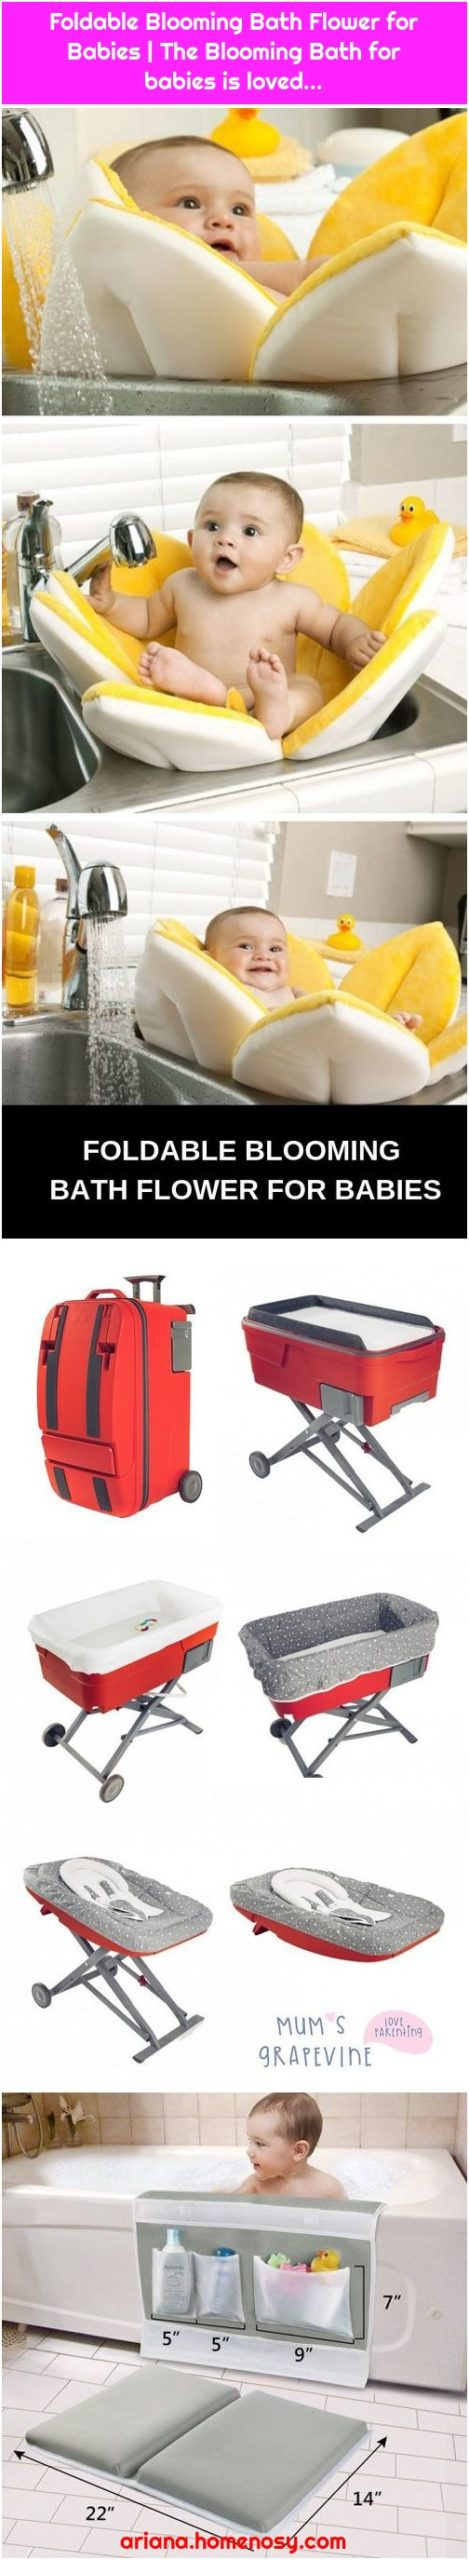 Foldable Blooming Bath Flower for Babies | The Blooming Bath for babies is loved...